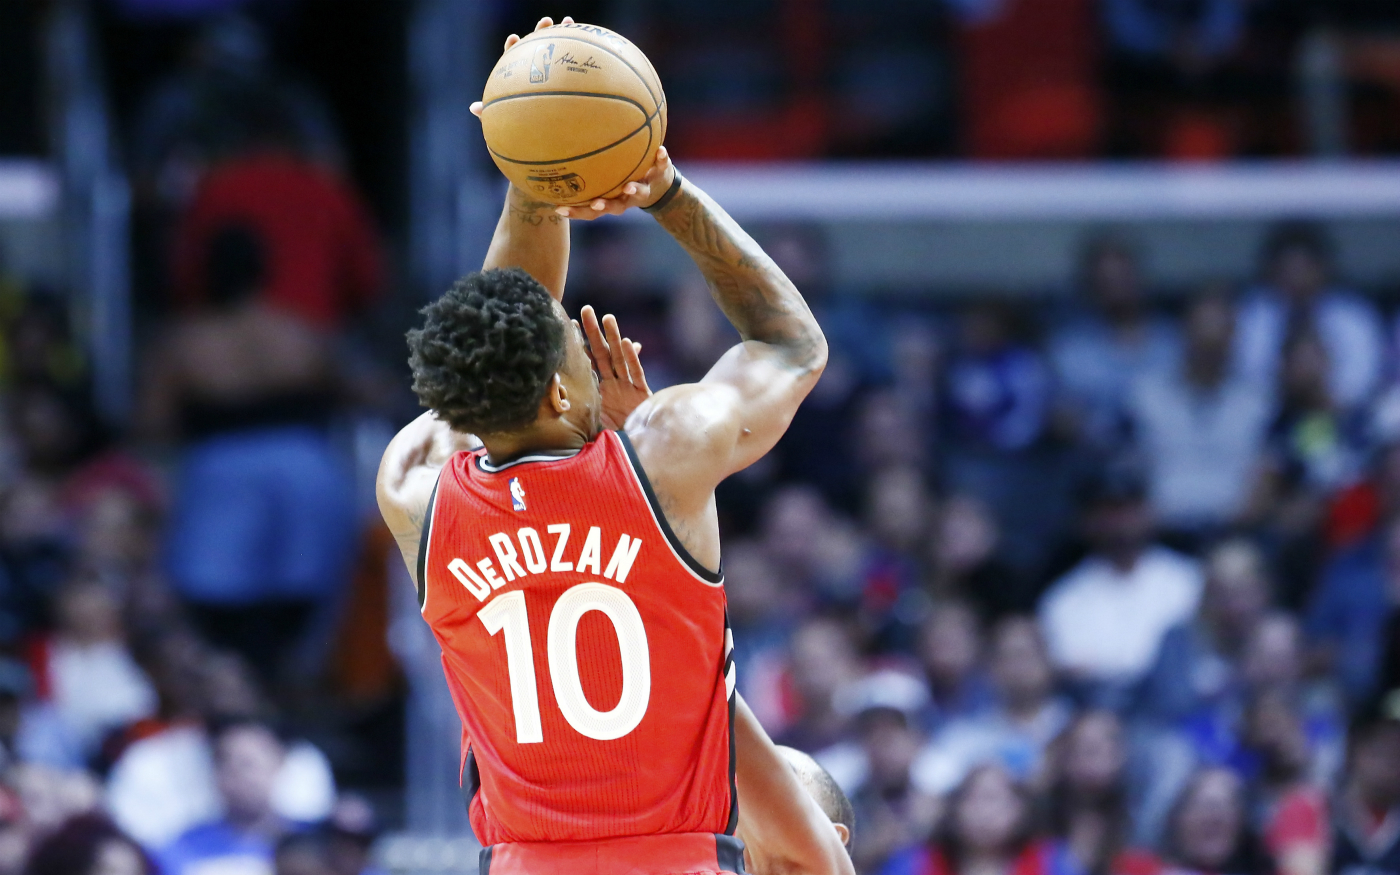 Les 38 points de DeMar DeRozan font beaucoup de mal au Heat